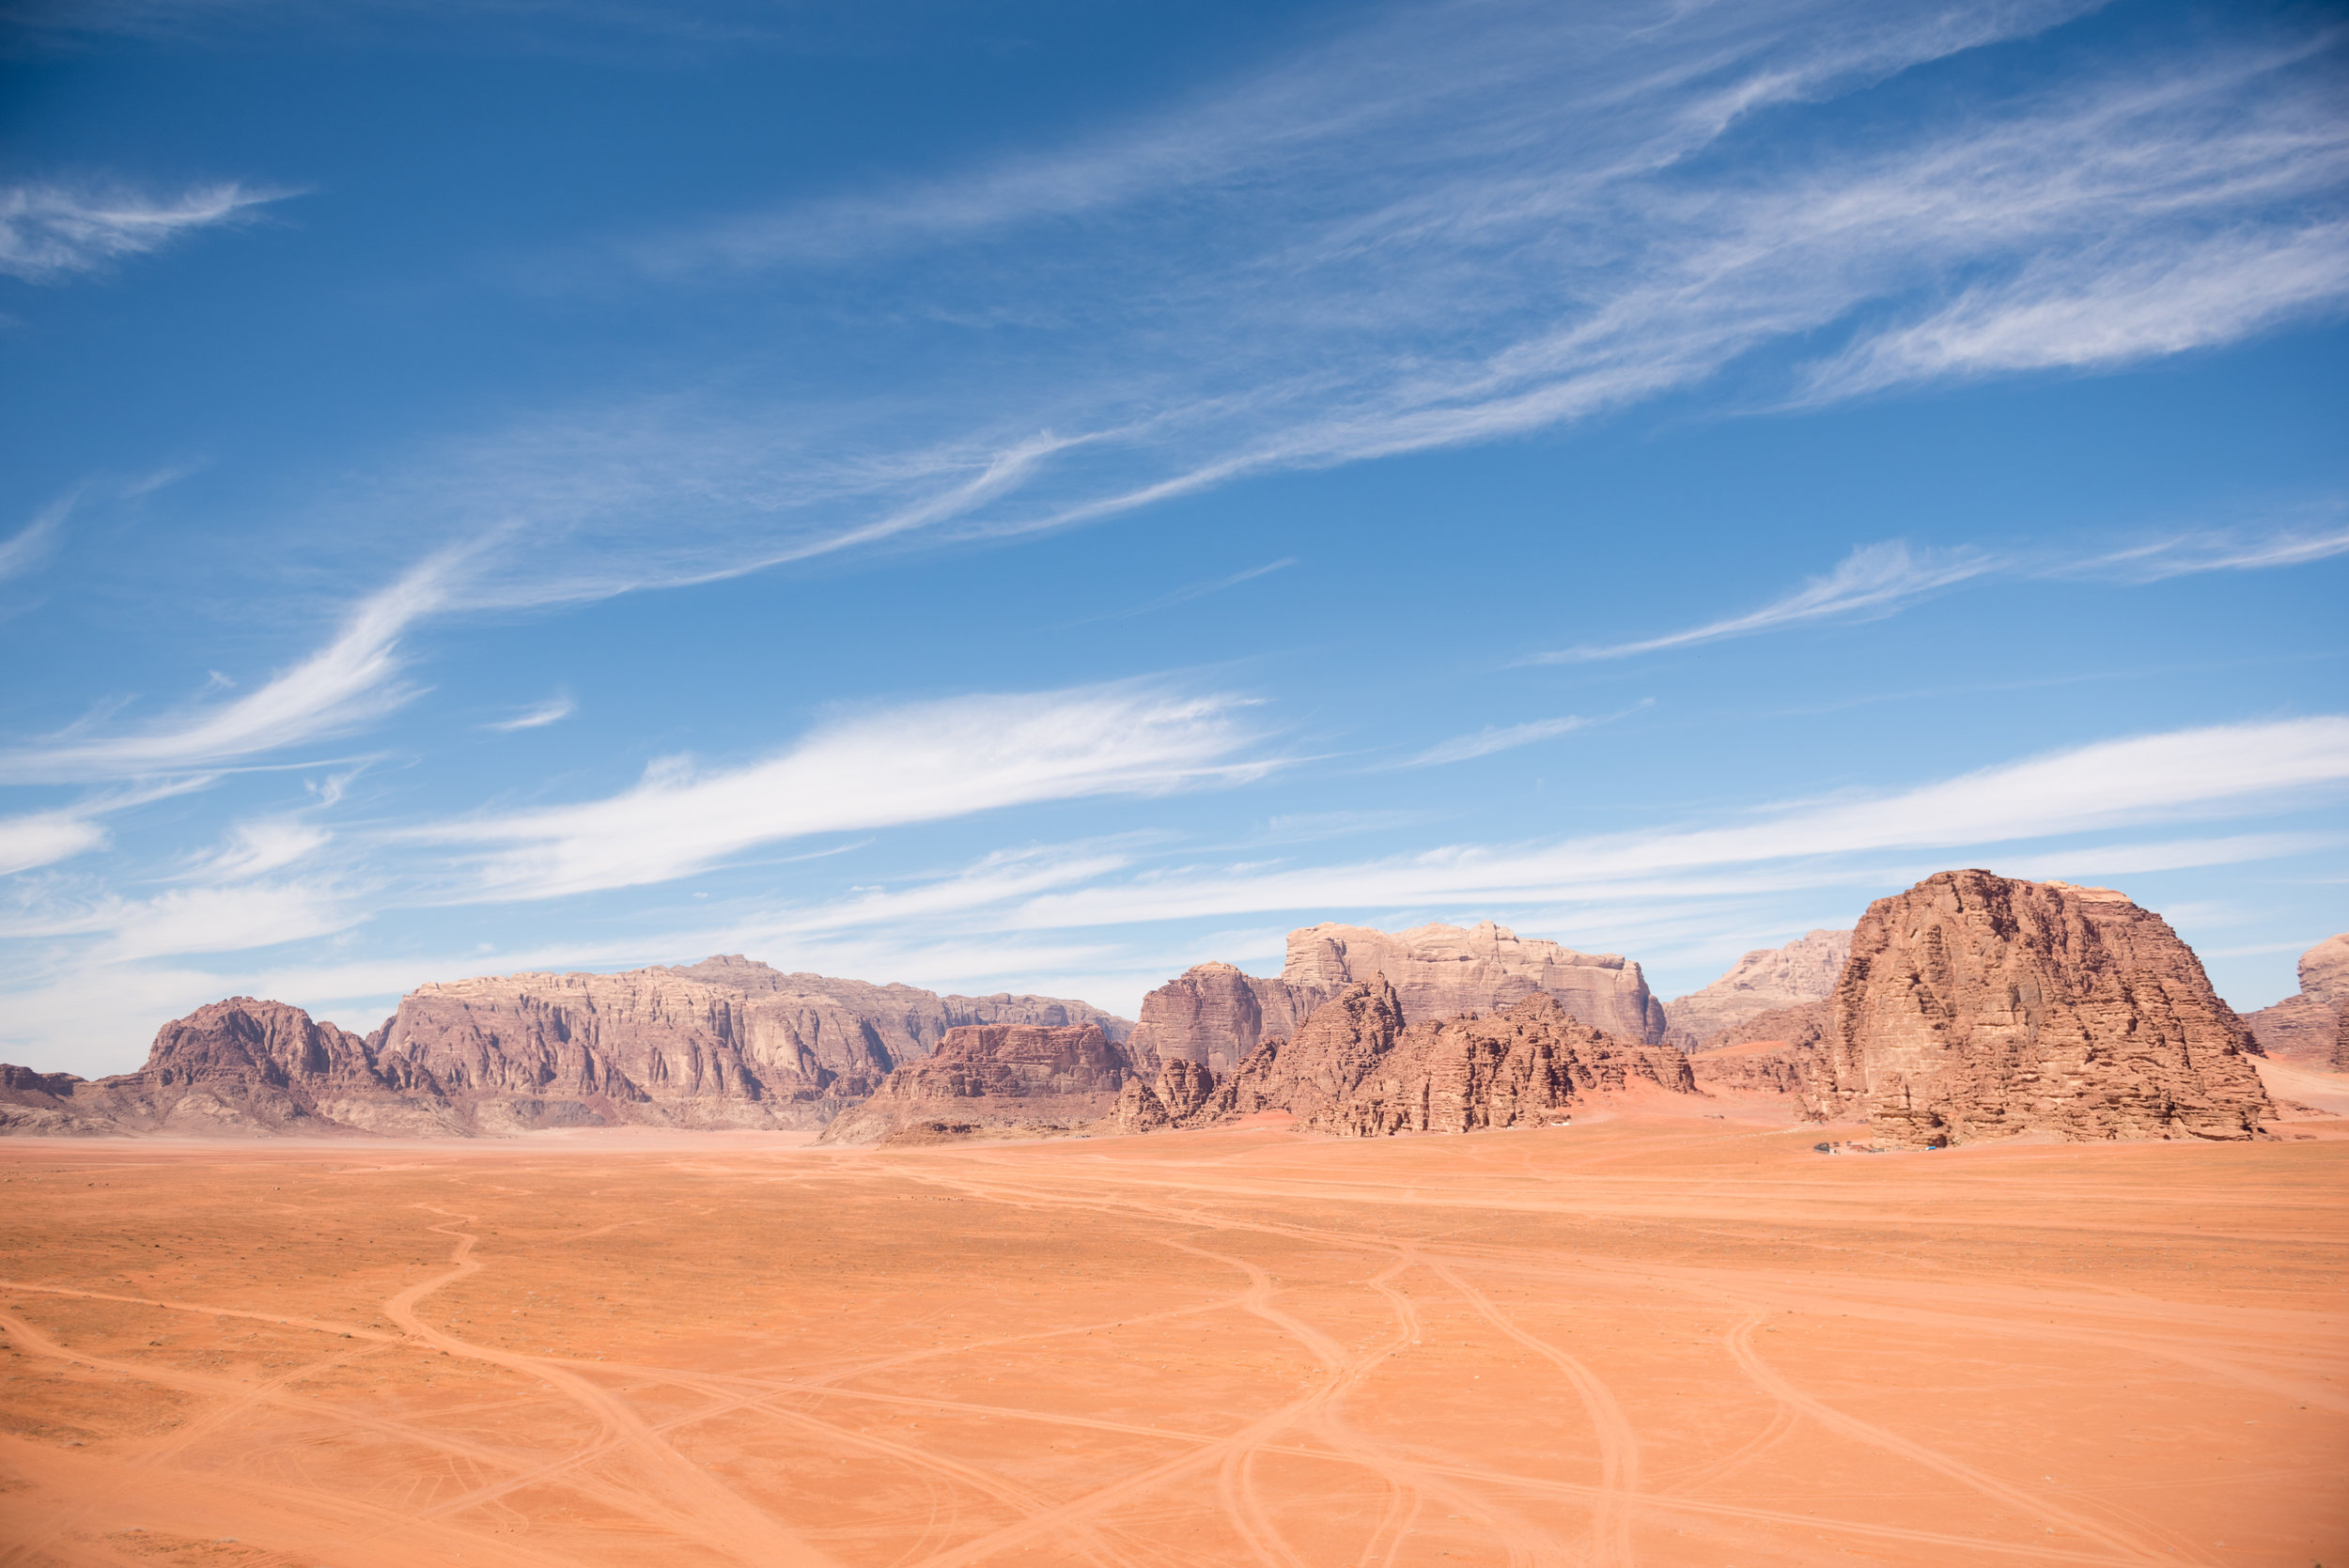 One of Wadi Rum's many beautiful landscapes. Photo taken by one of our guests, Simon Walser,  @walser.simon  on Instagram.